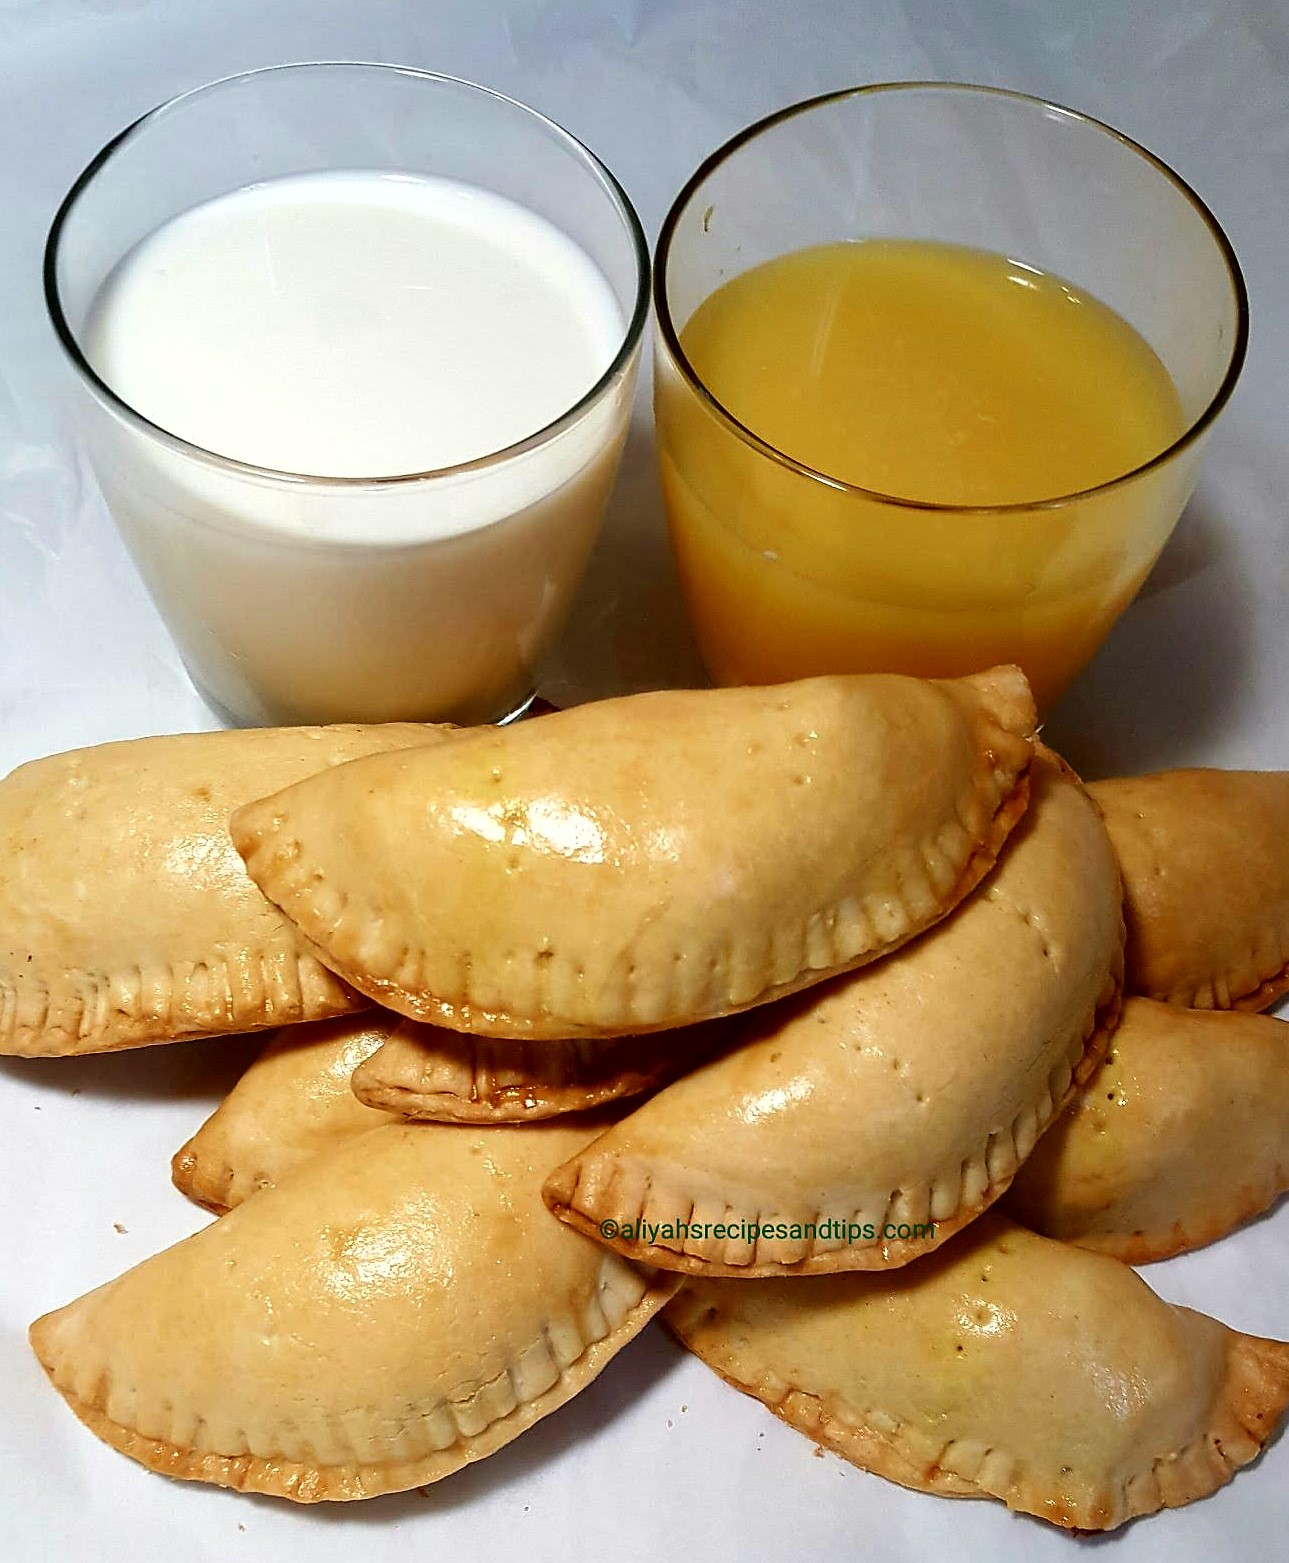 Pie, Meatpie, meat pie,African pie, Nigerian meat pie, African meatpie,beef, Nigerian, patty, empanadas, ground beef, potatoes, snack, African snacks, Nigerian snacks